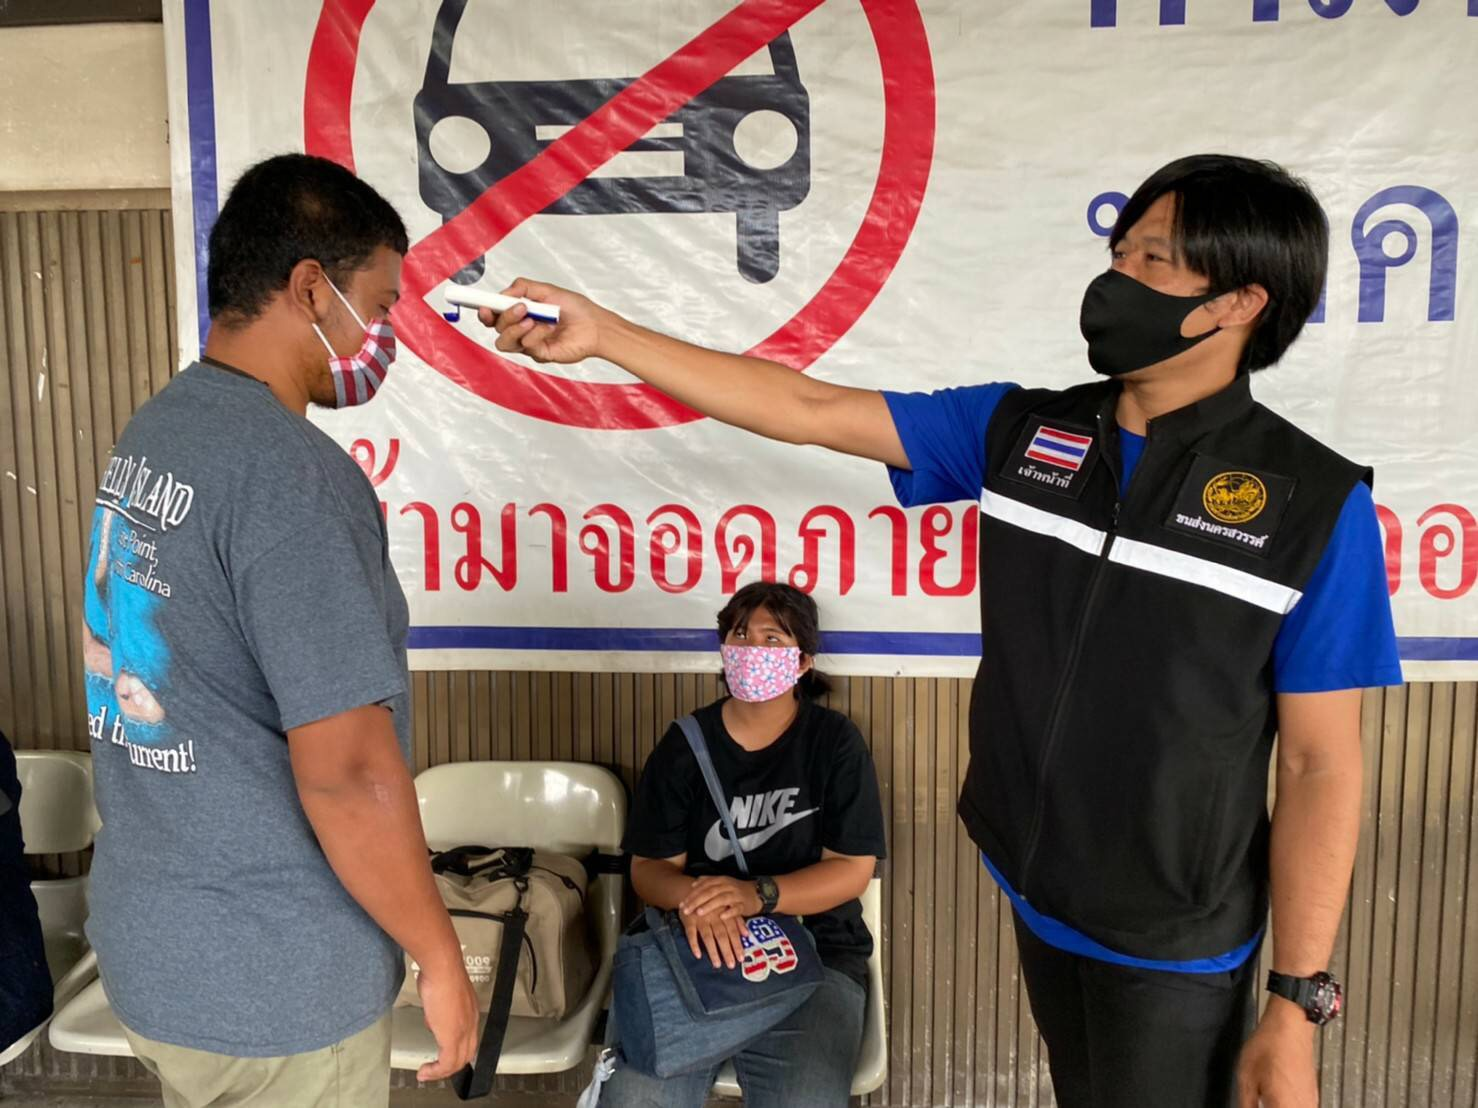 Thailand's COVID-19 cases rise to 2,960 with 6 new infections